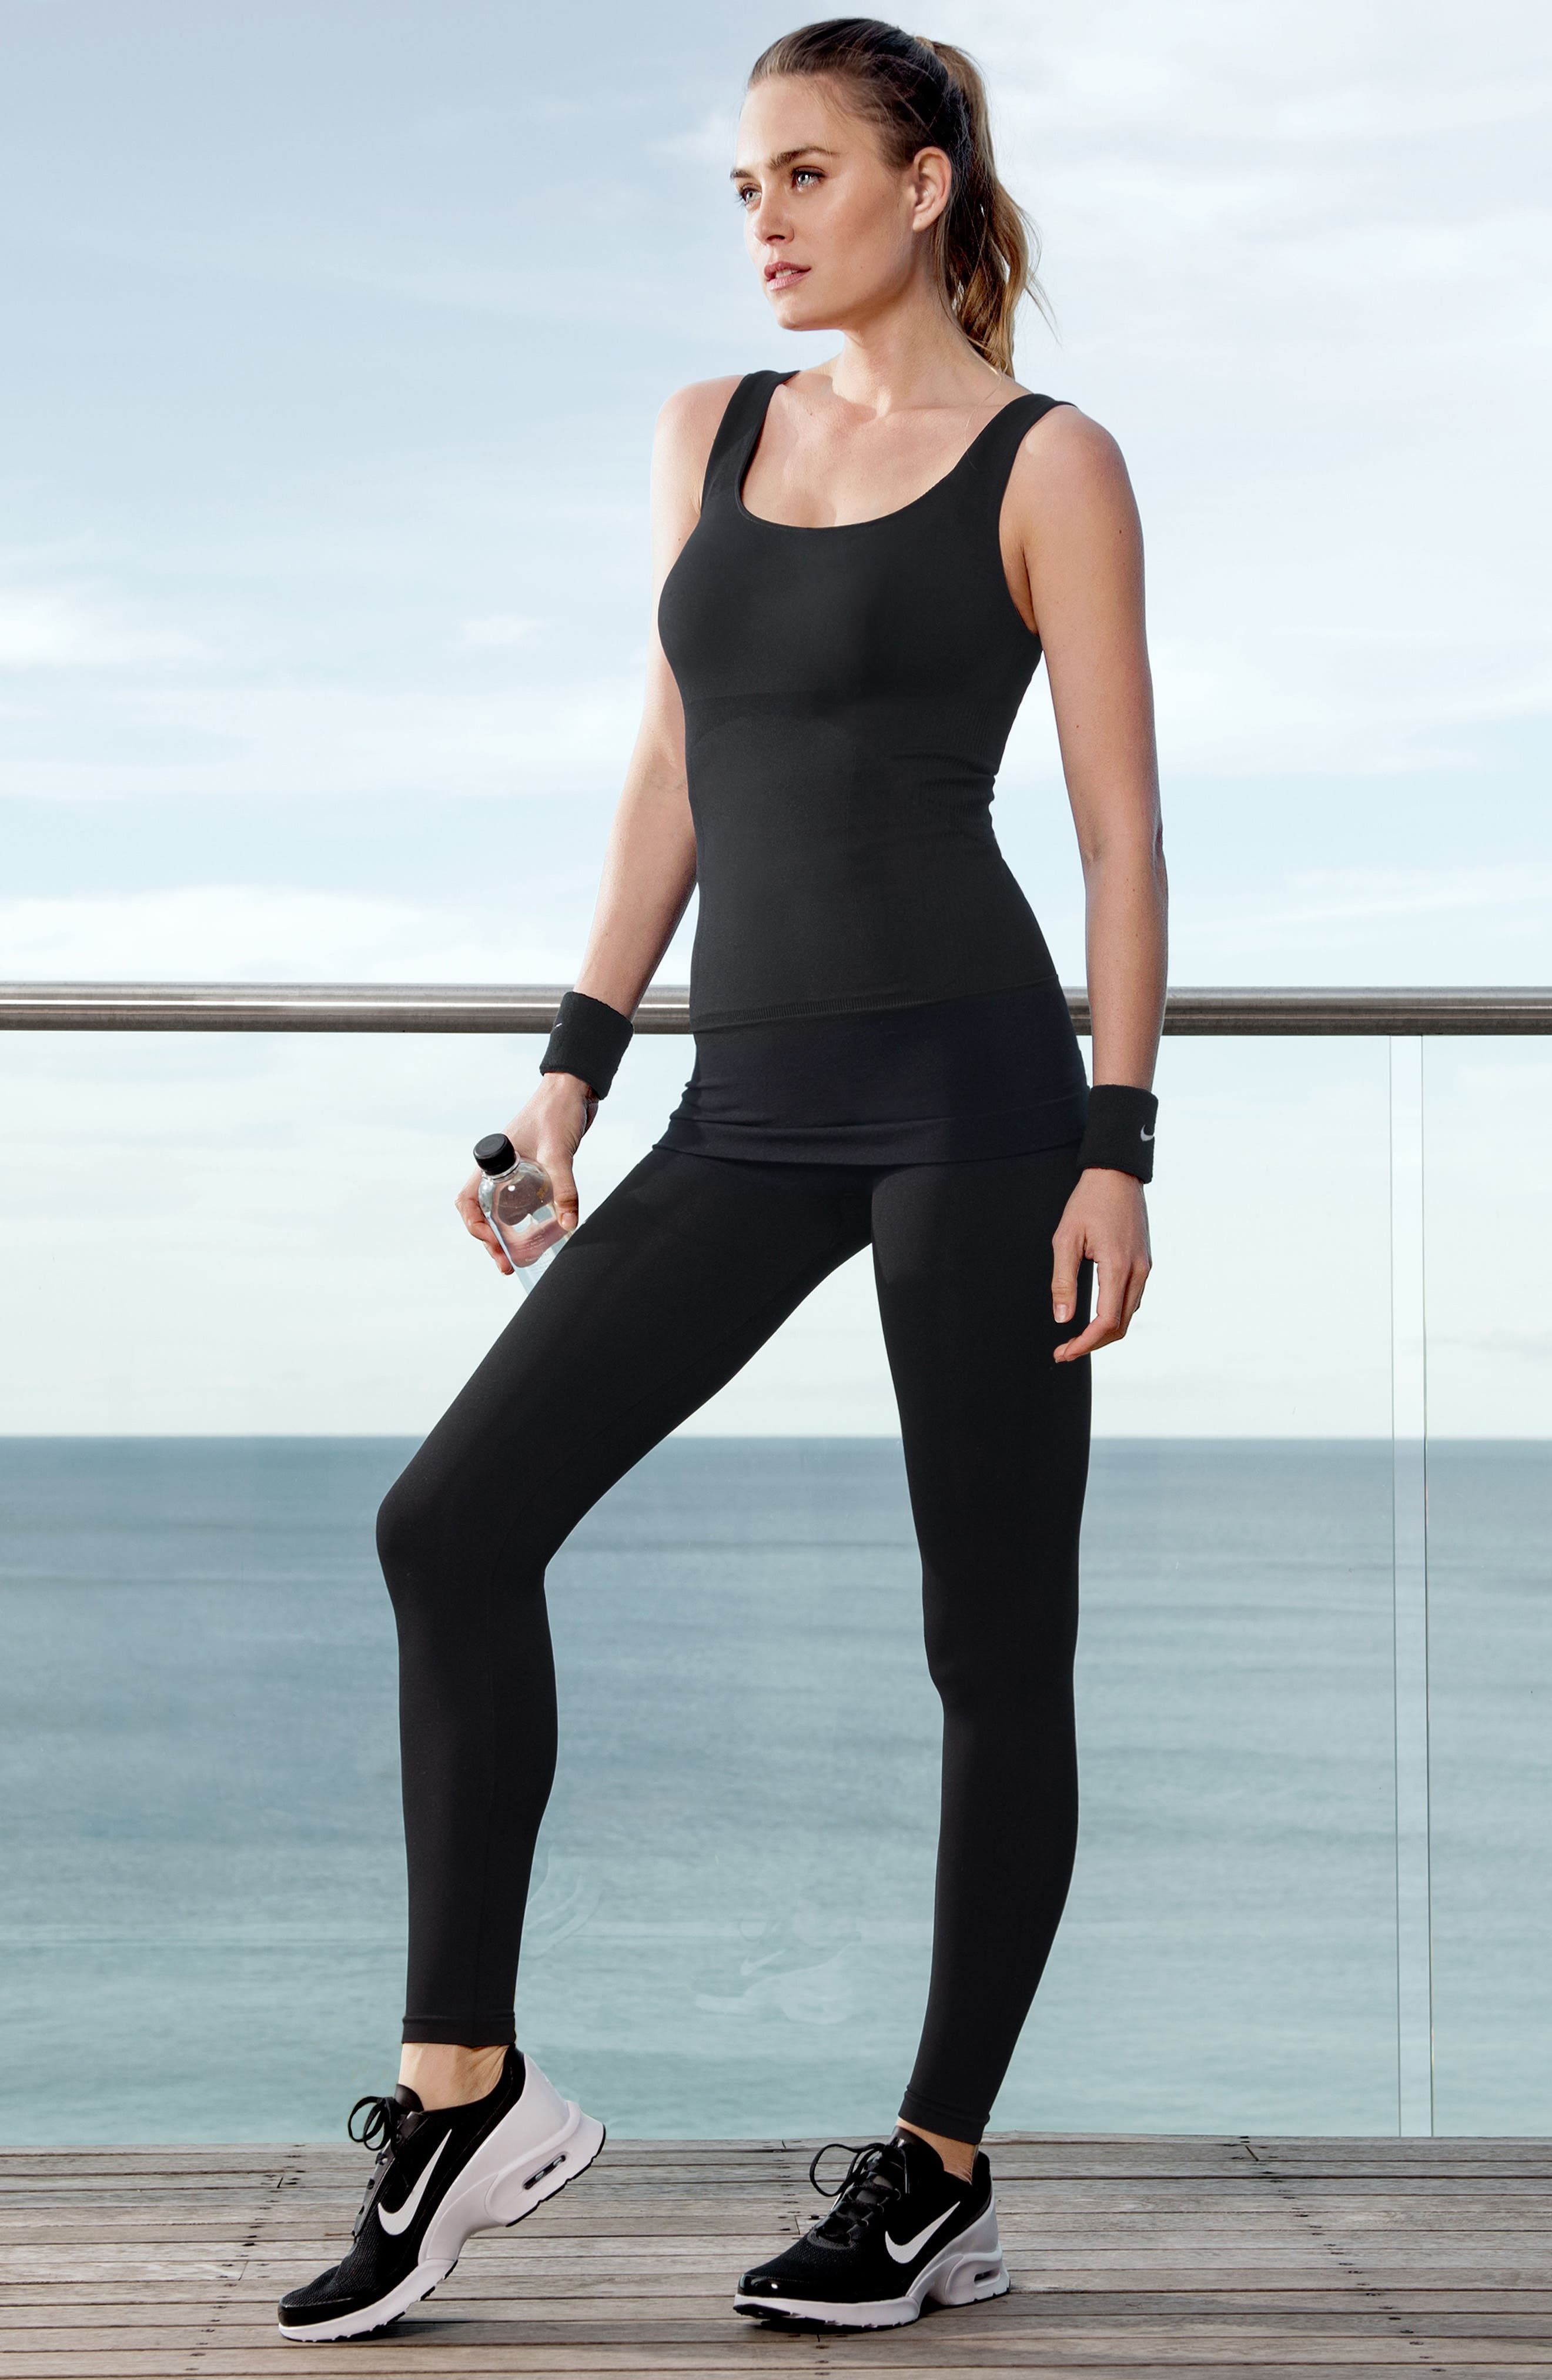 Everyday<sup>™</sup> Pull-Down Postpartum + Nursing Support Tank Top,                             Alternate thumbnail 8, color,                             DEEPEST BLACK